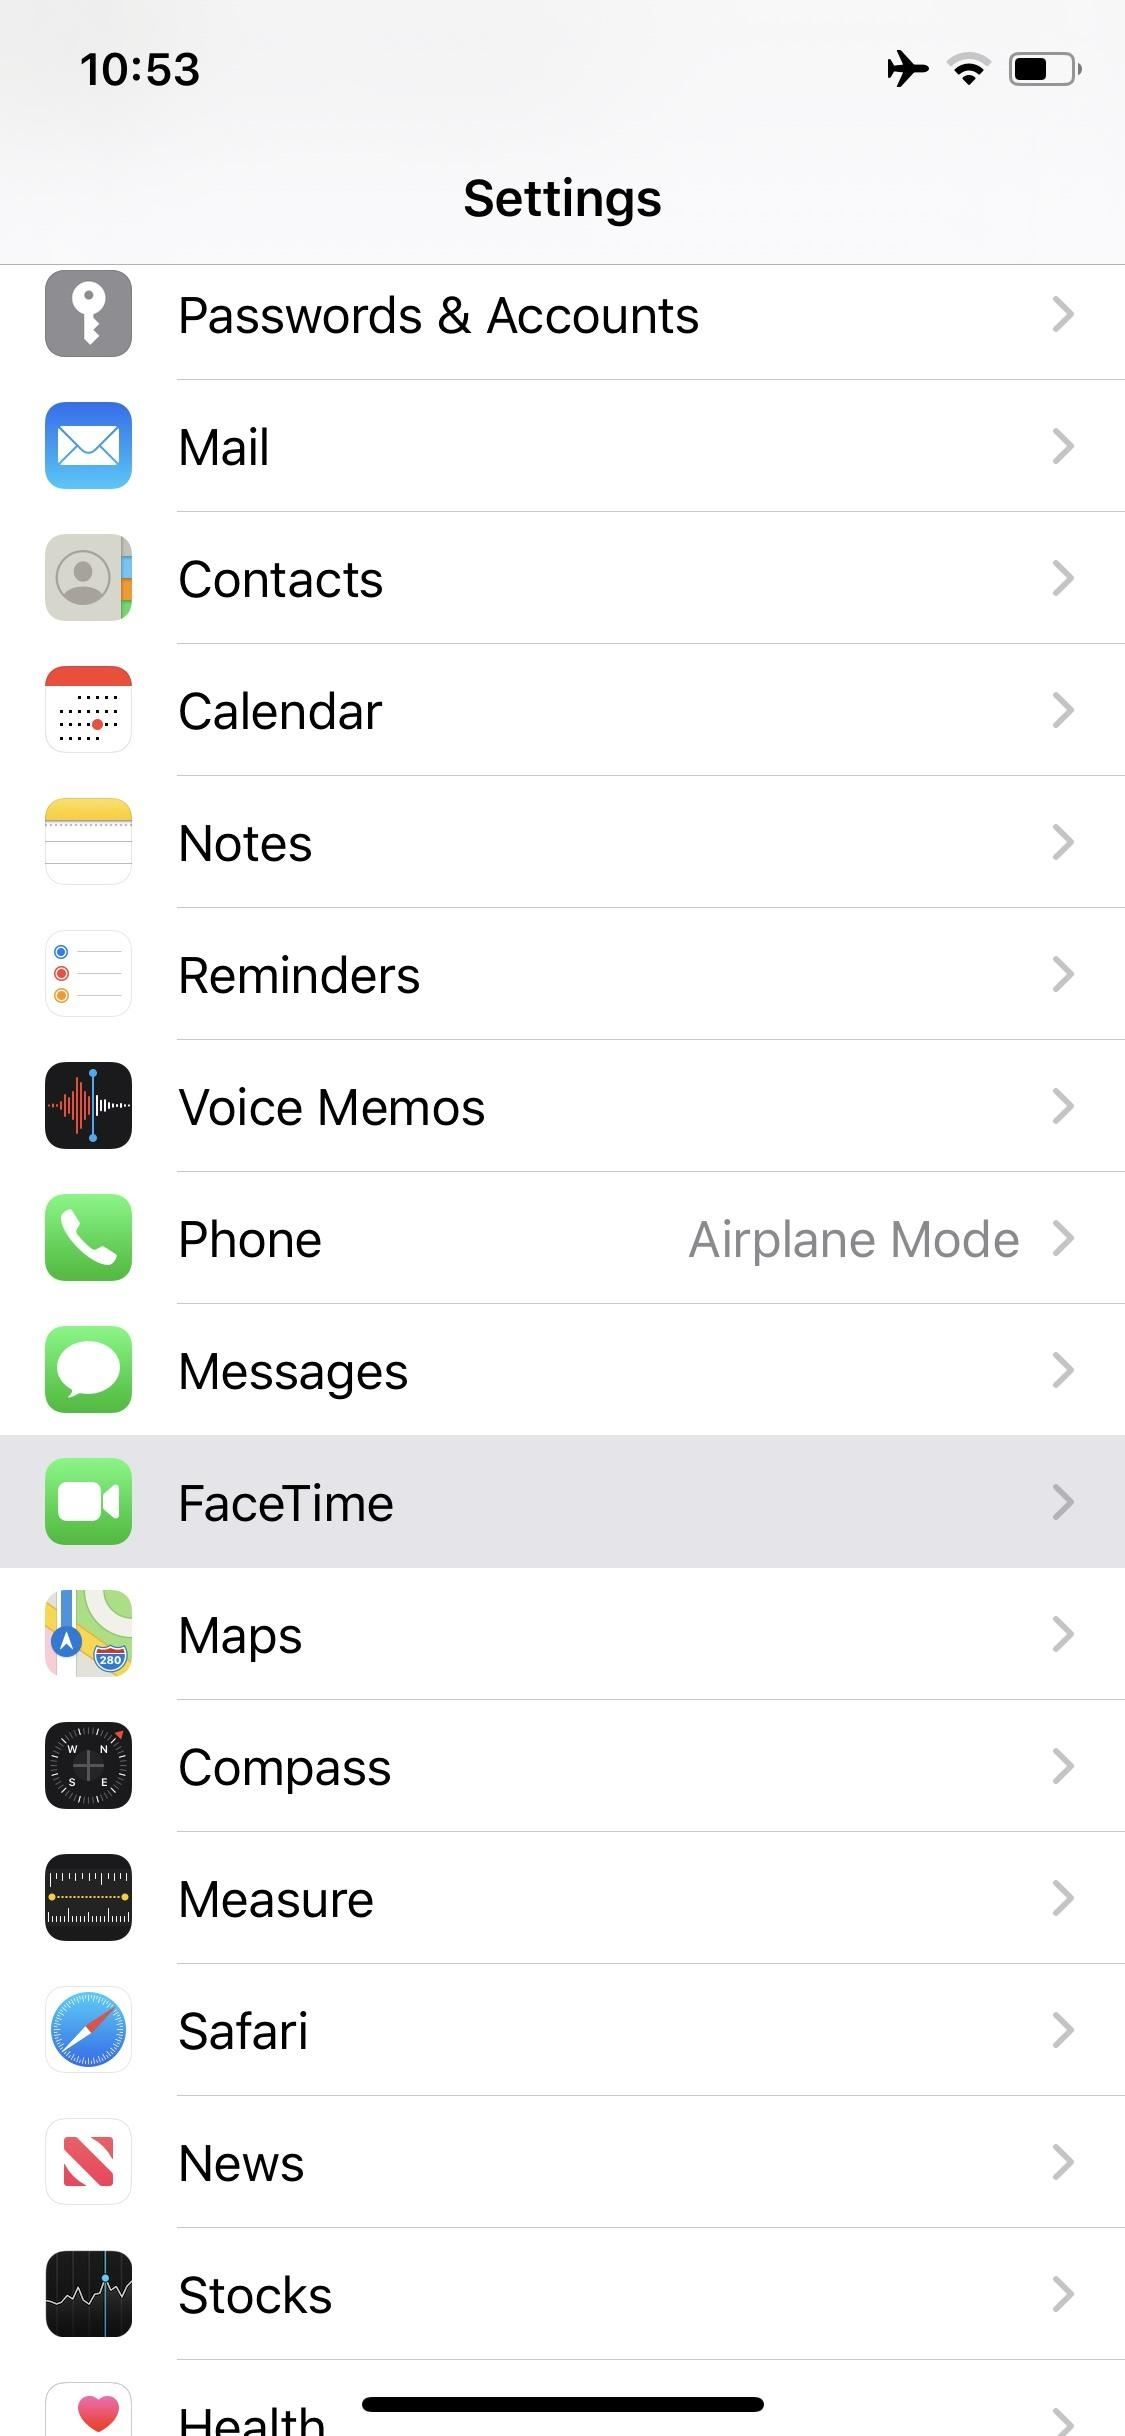 How to Stop Group FaceTime Tiles from Auto-Resizing & Moving When People Speak